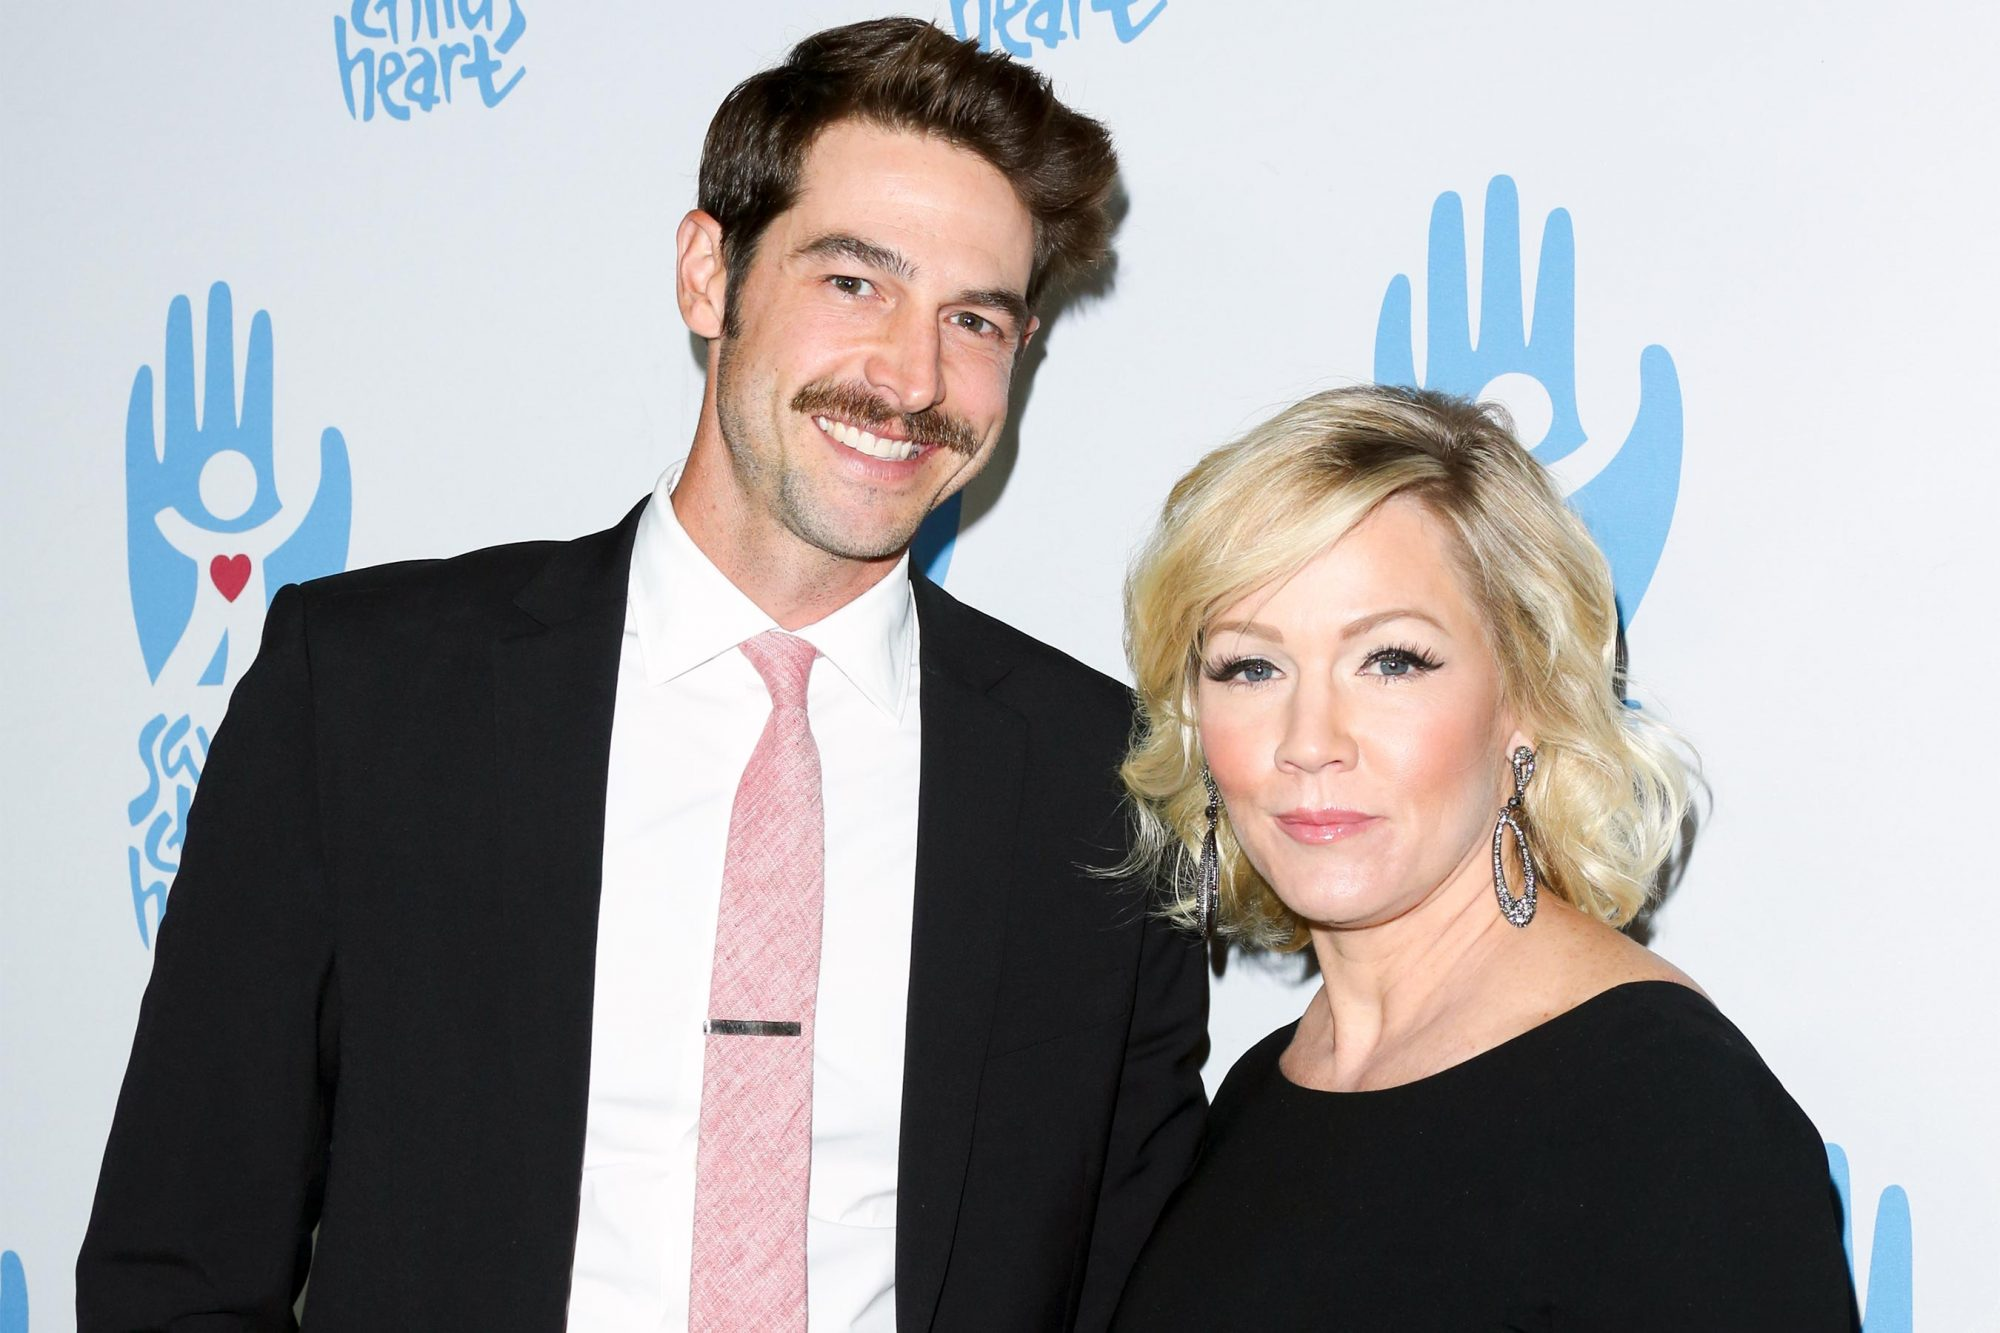 CULVER CITY, CA - NOVEMBER 15: Actors Dave Abrams (L) and Jennie Garth (R) attend the 2nd Annual Save A Child's Heart Gala at Sony Pictures Studios on November 15, 2015 in Culver City, California. (Photo by Paul Archuleta/Getty Images)